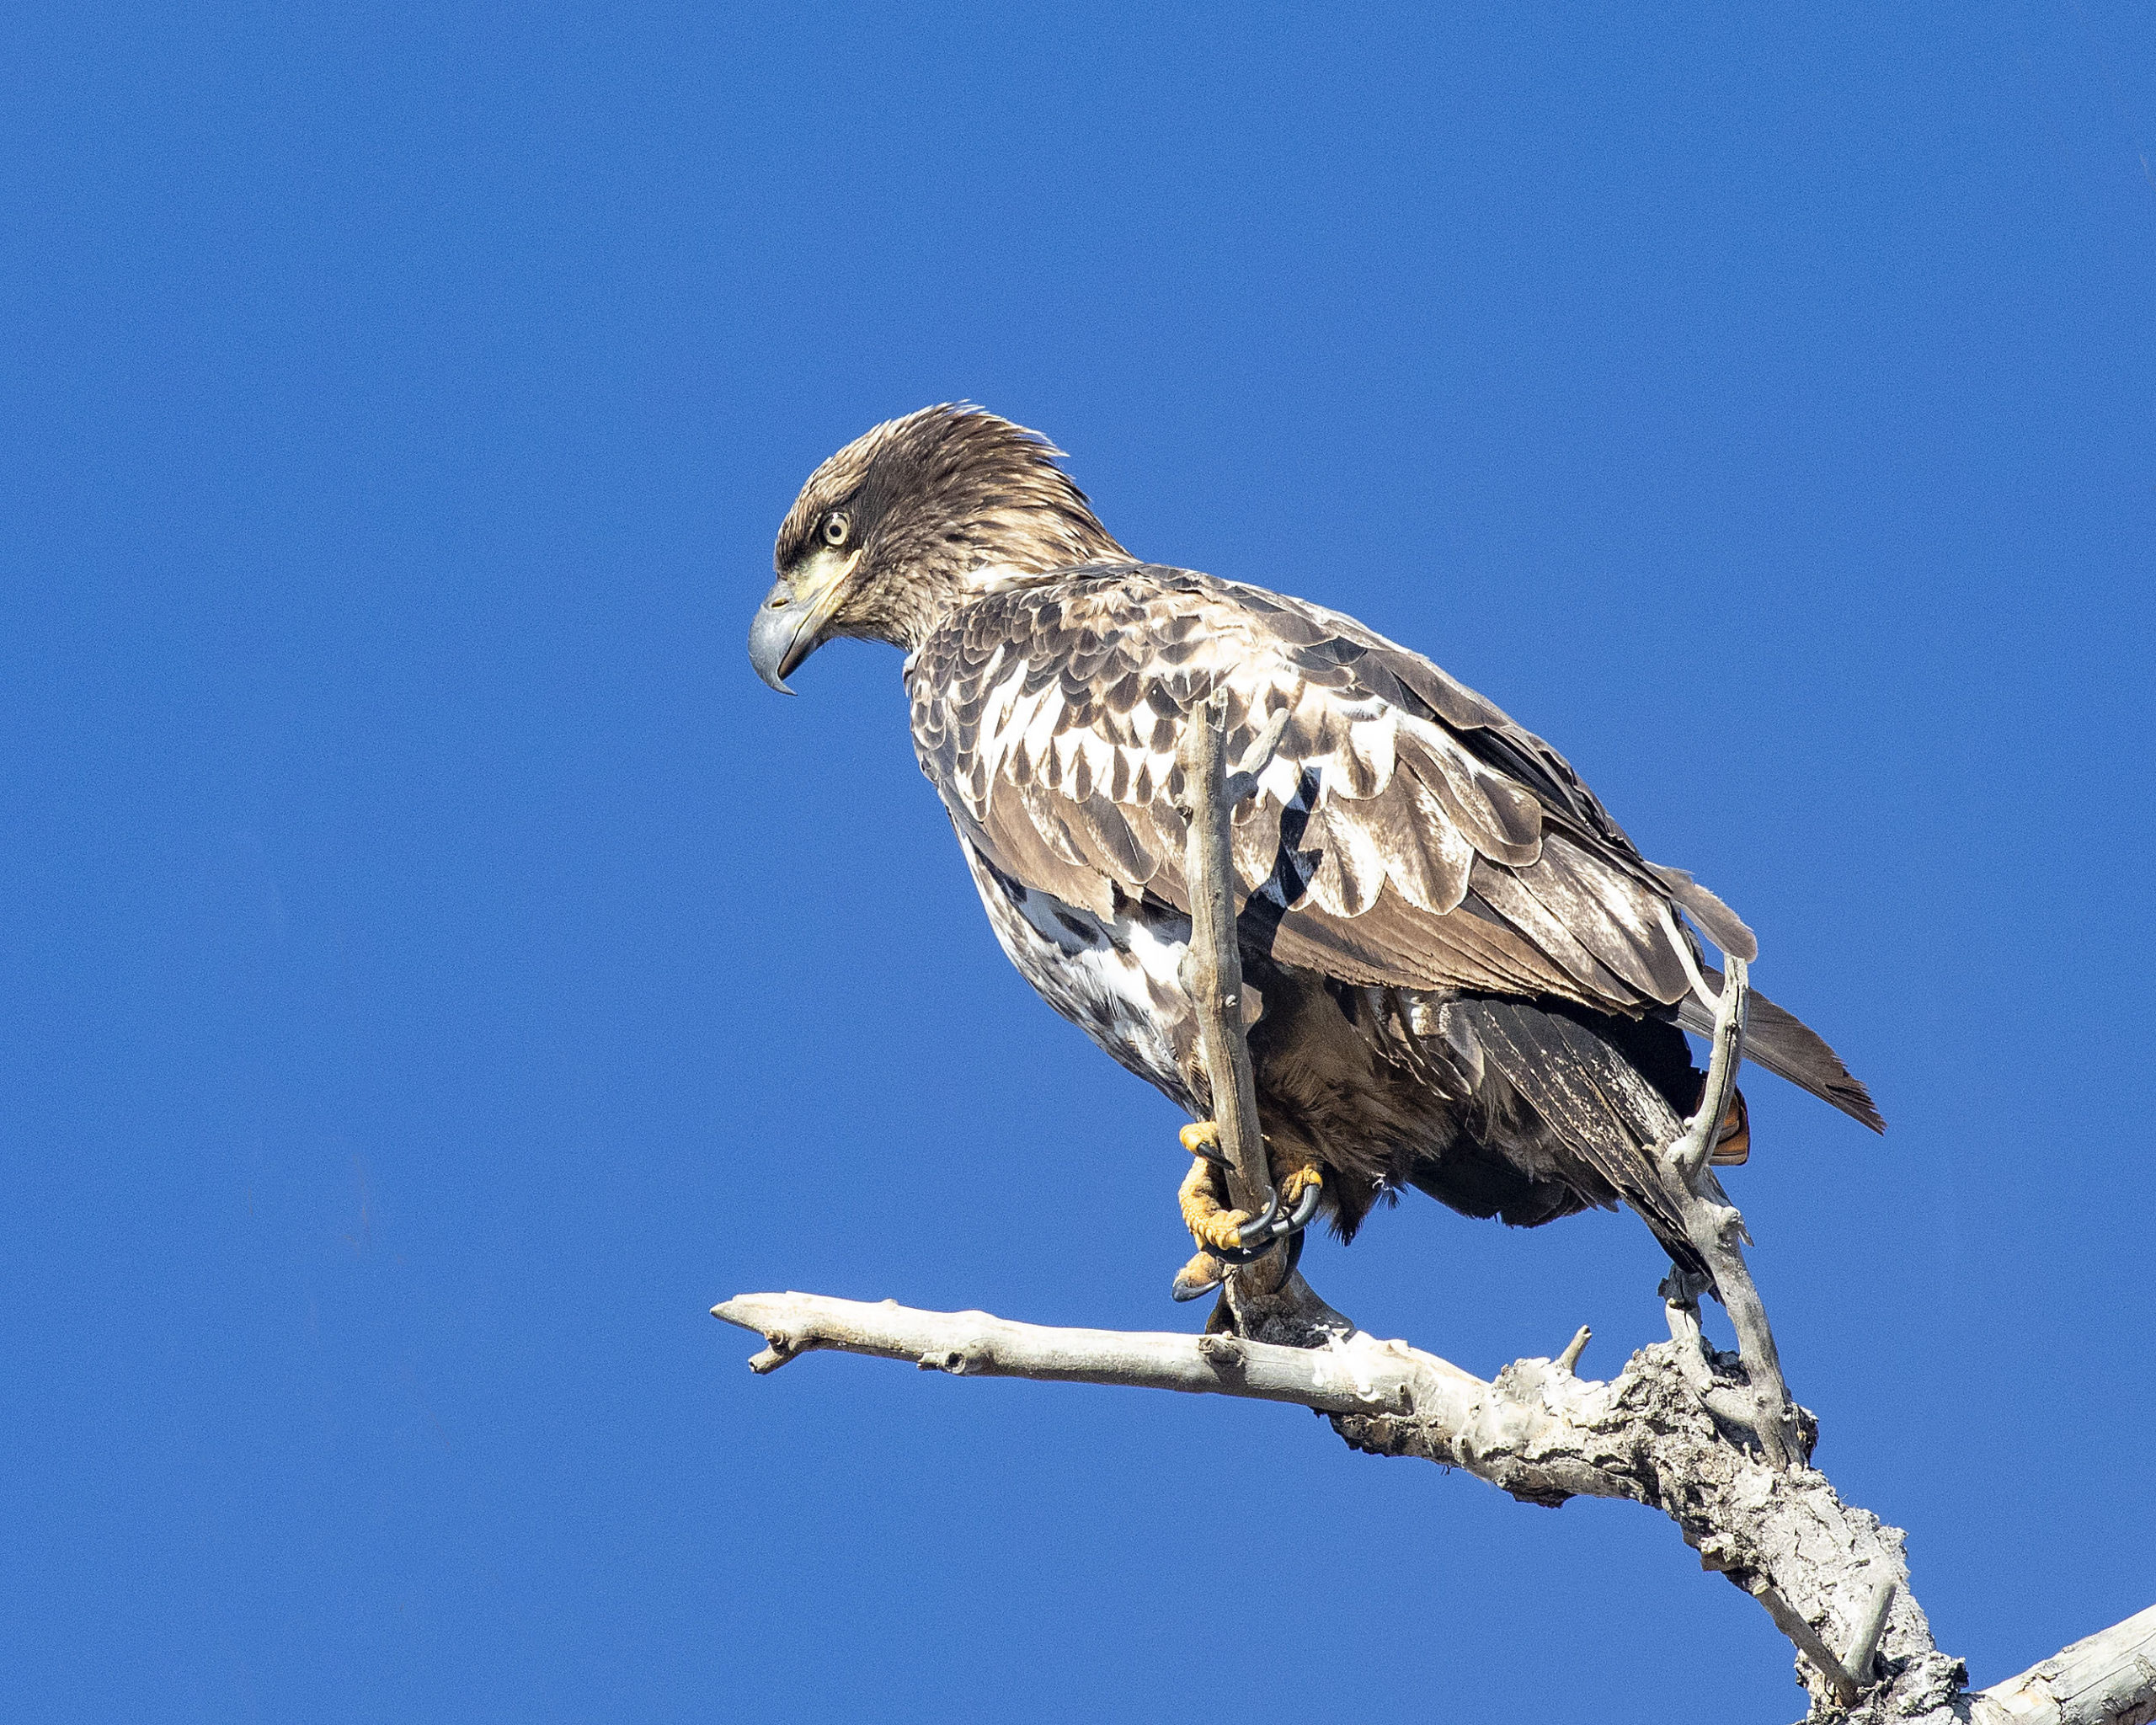 The juvenile bald eagle has a darker (blackish) bill and cere, and extensive white on its body, while the golden does not.